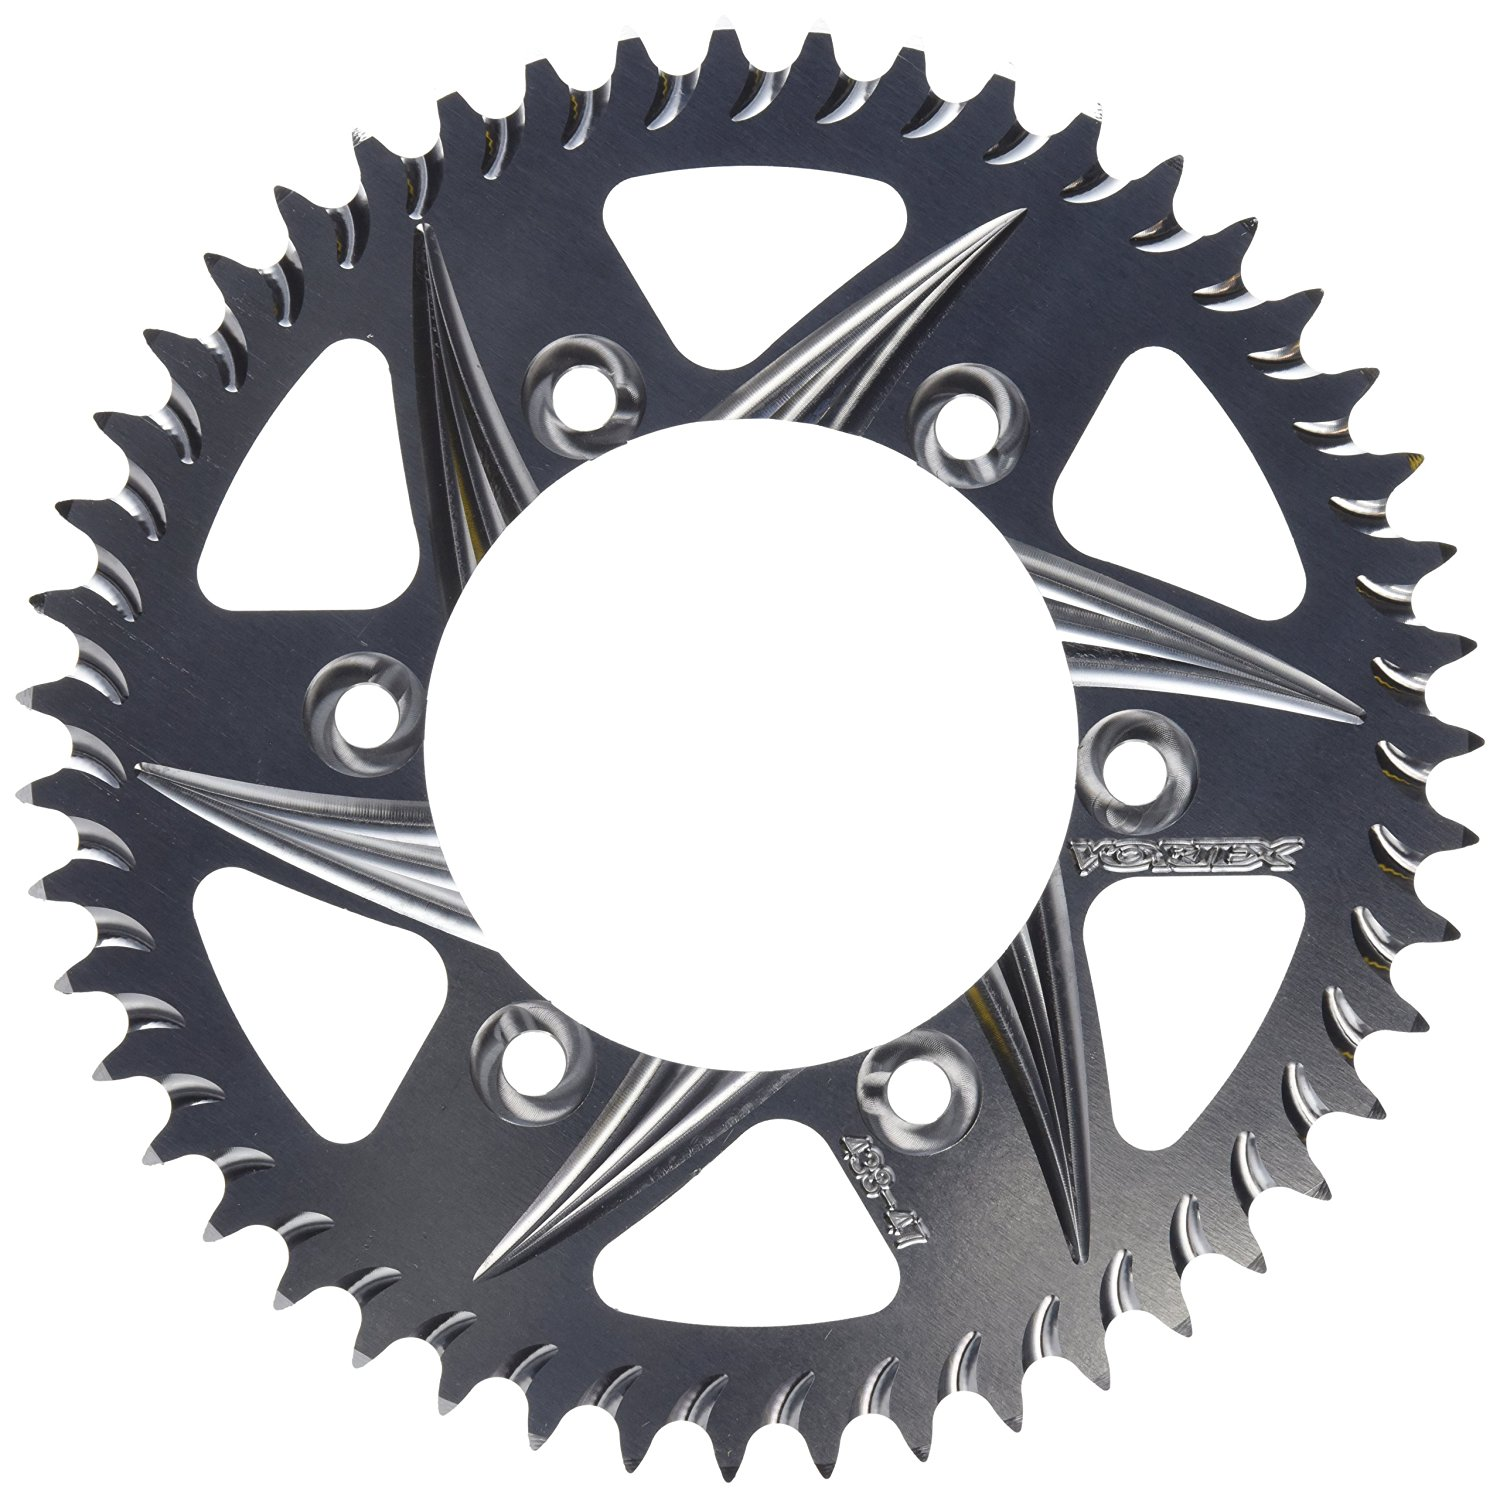 Vortex 526AK-47 47-Tooth 520-Pitch Hardcoat Rear Sprocket